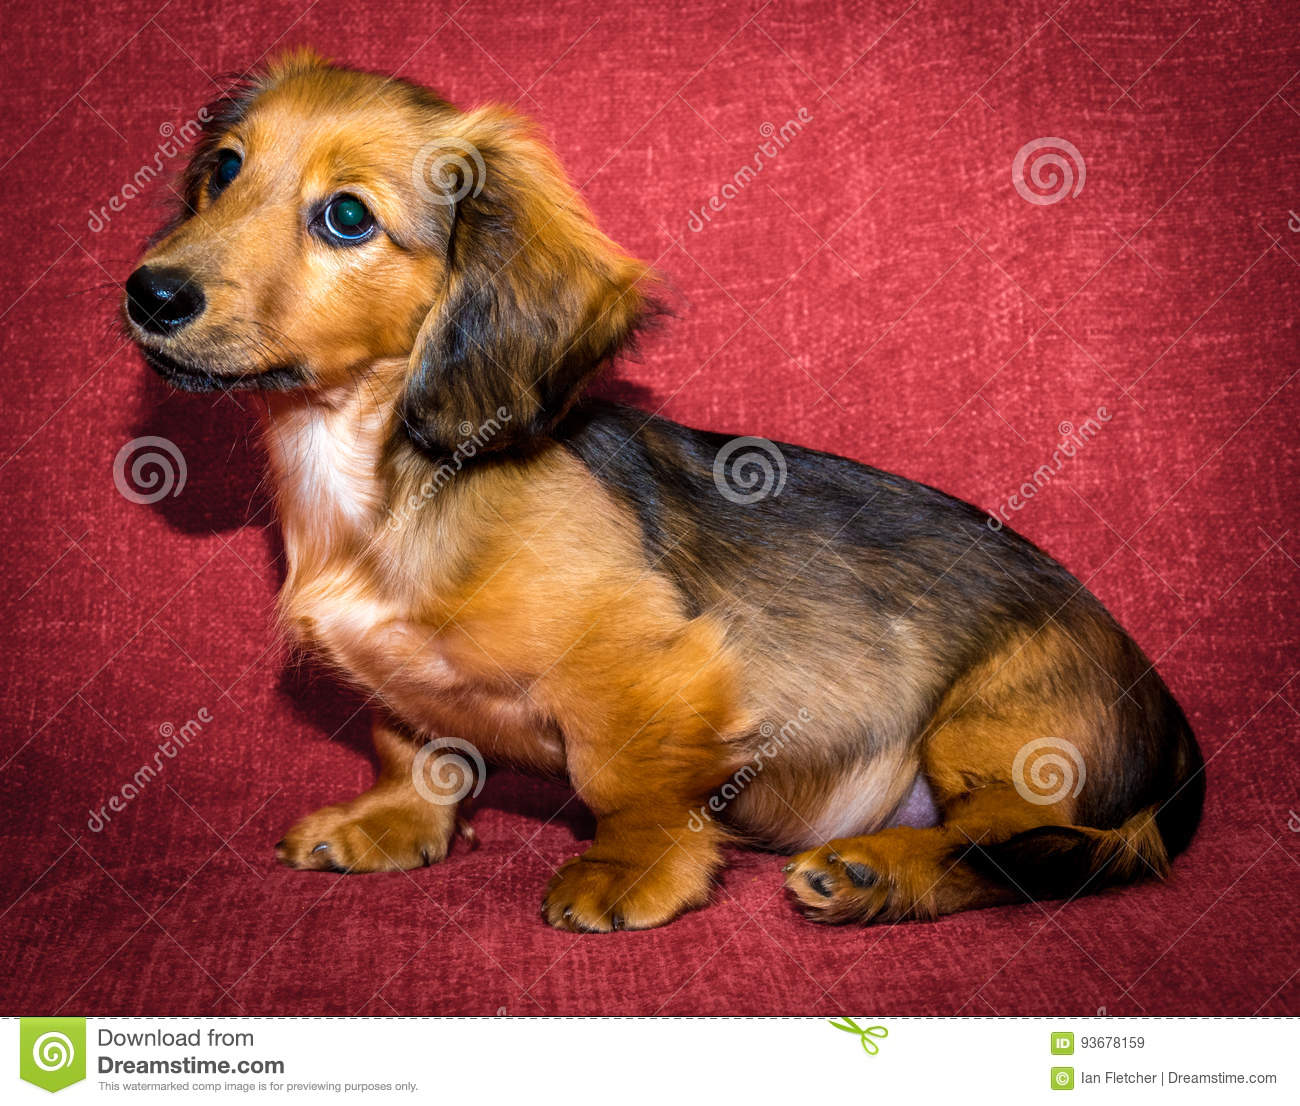 Miniature Long Haired Dachshund Stock Image Image Of Cute Puppy 93678159